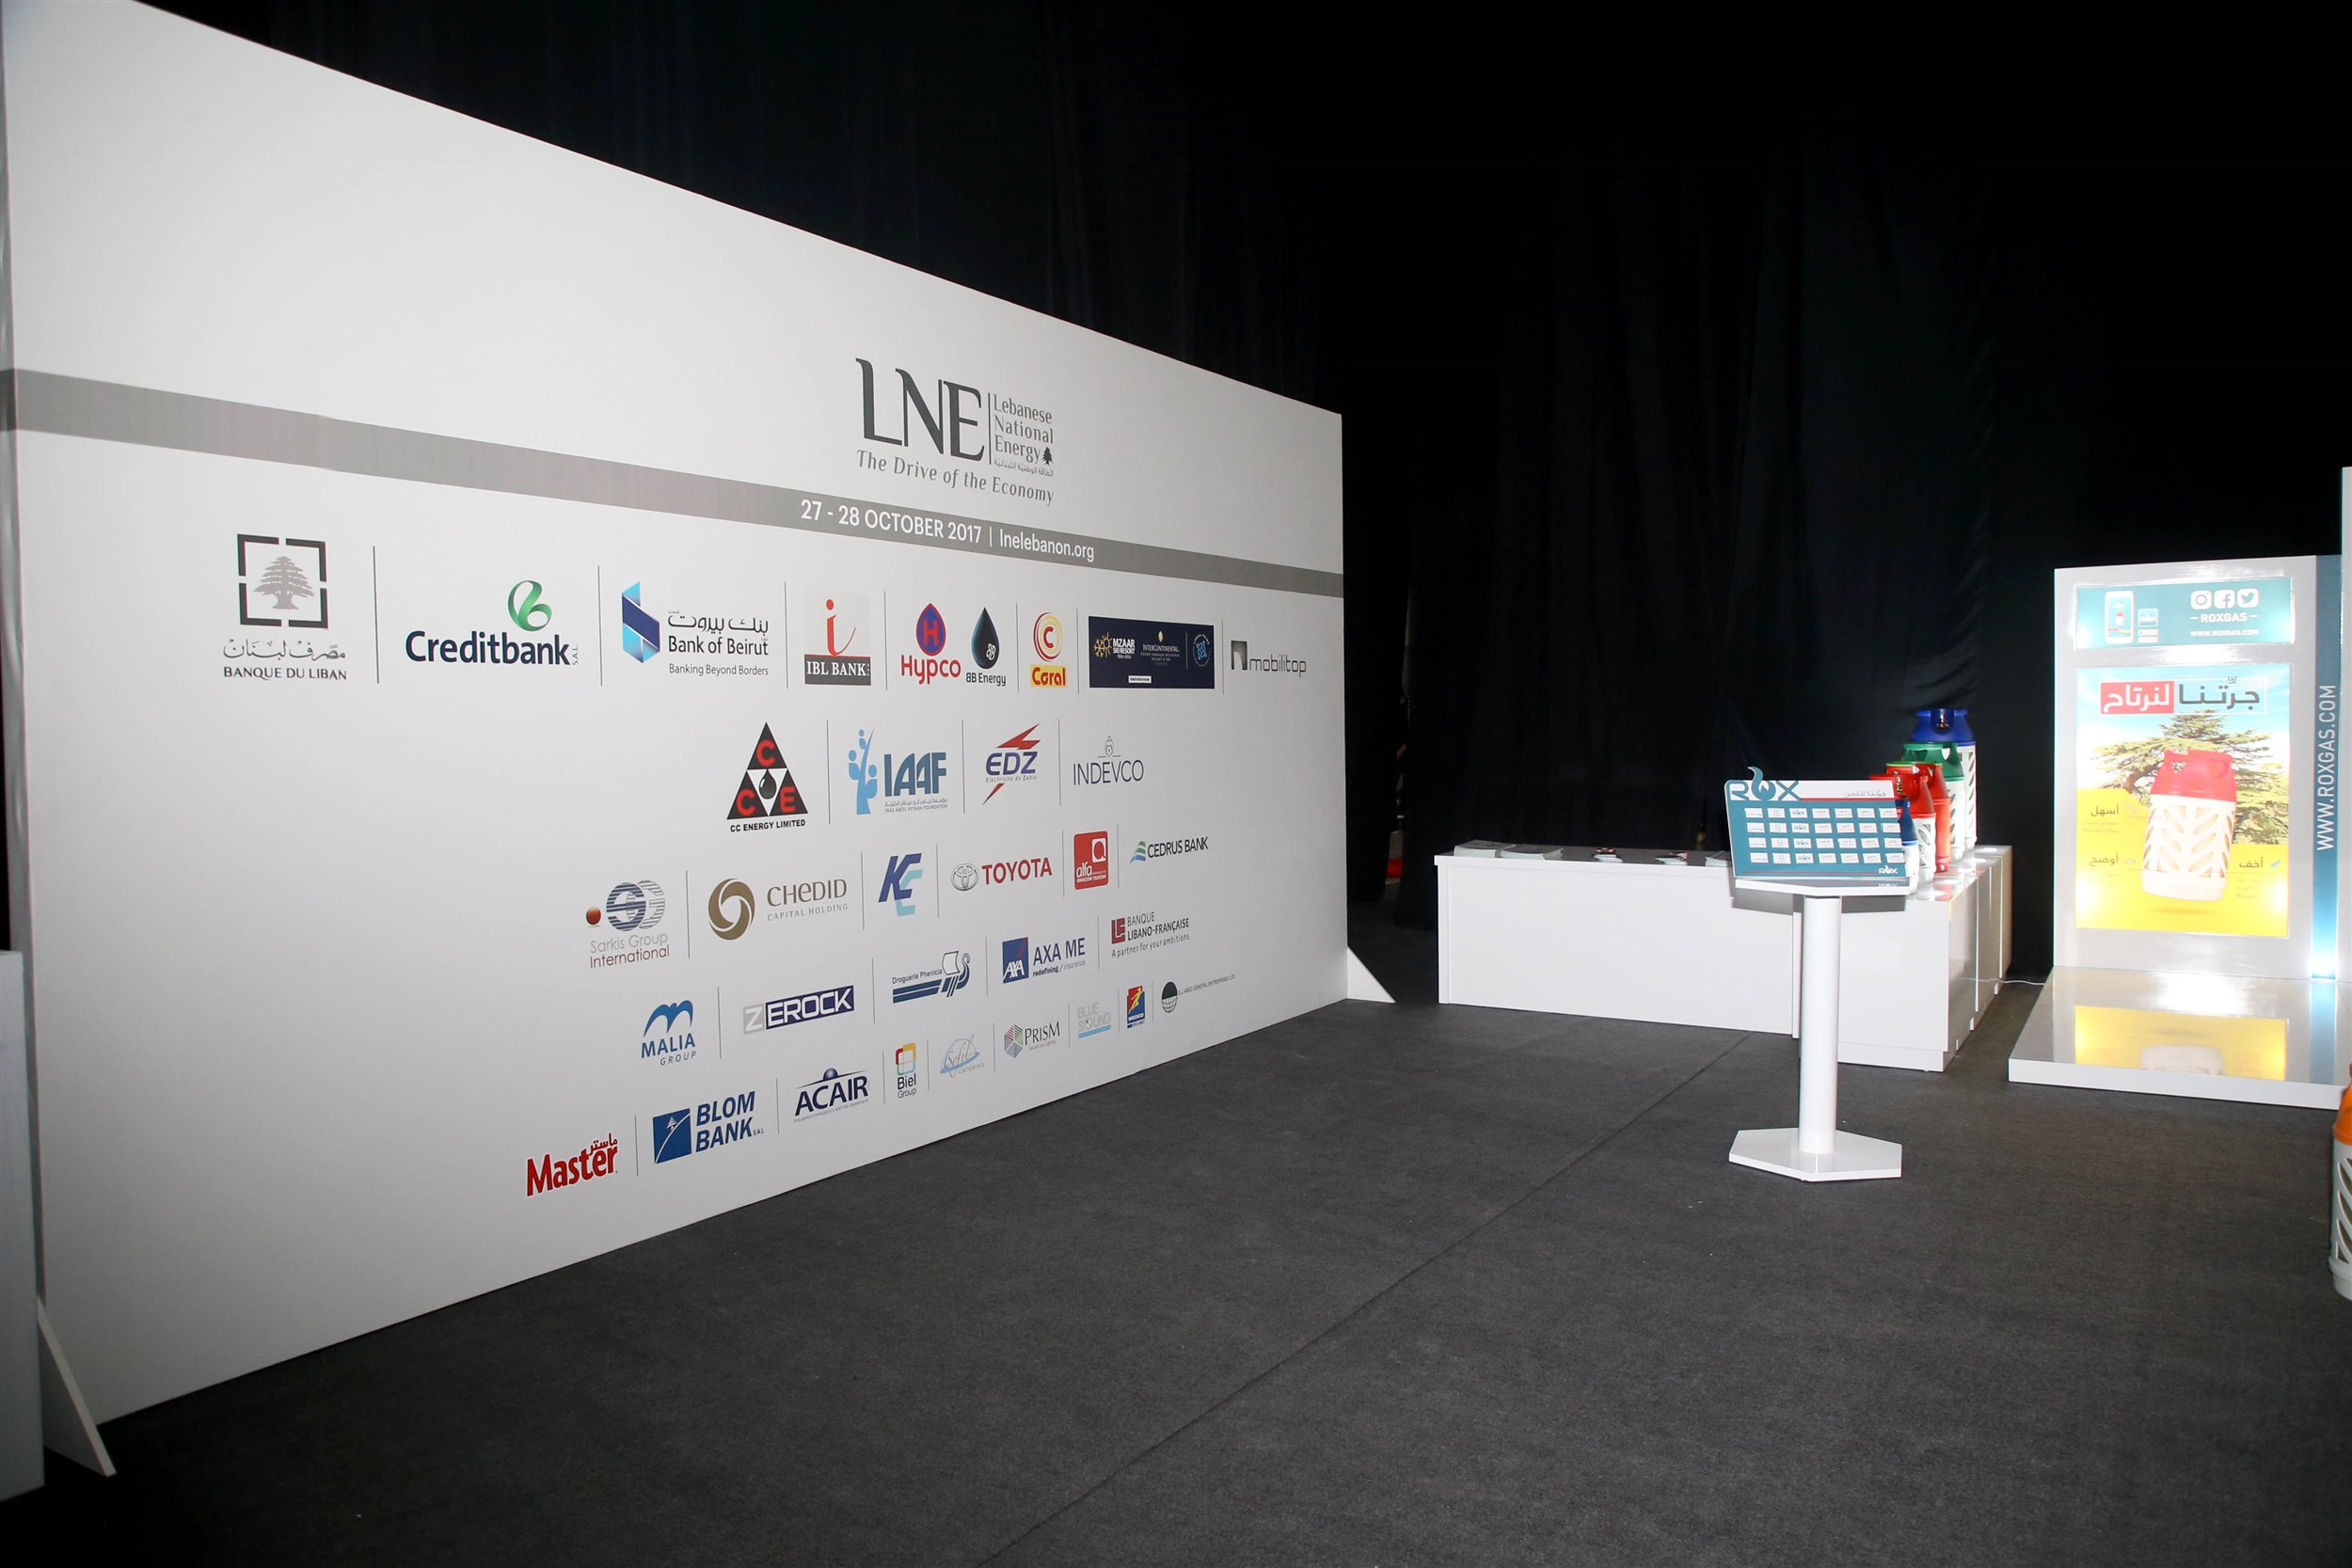 lne platform ready for the future of energy in lebanon sponsored by inas academic awards foundation iaaf as a believer in youth